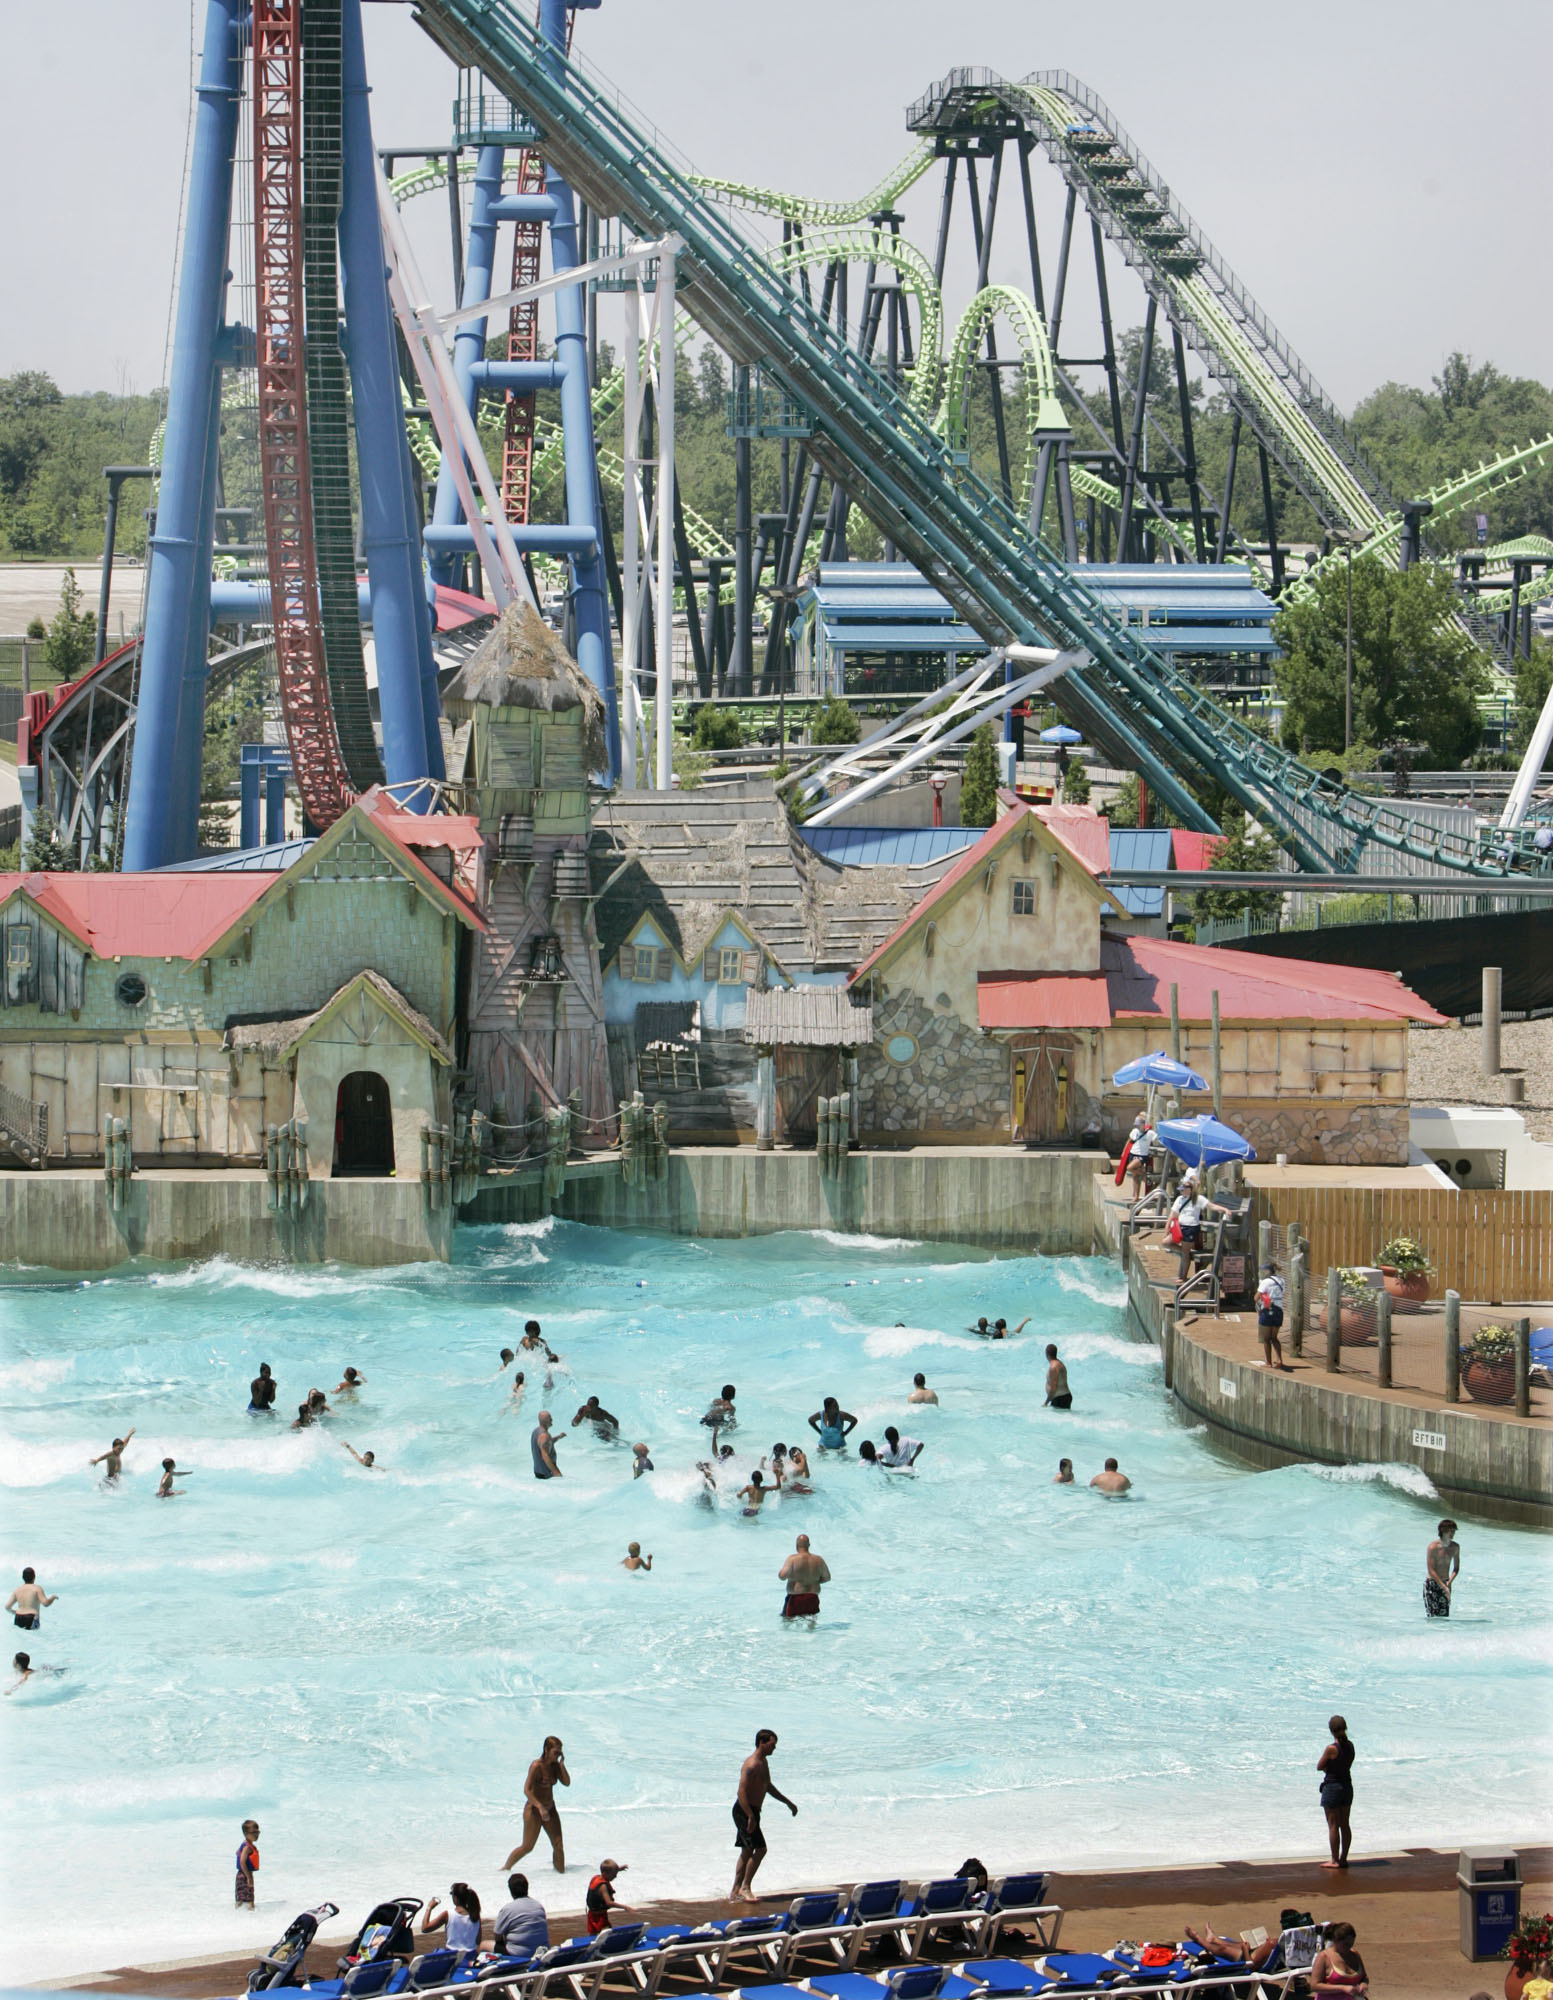 meijer has sights on former geauga lake property the blade when